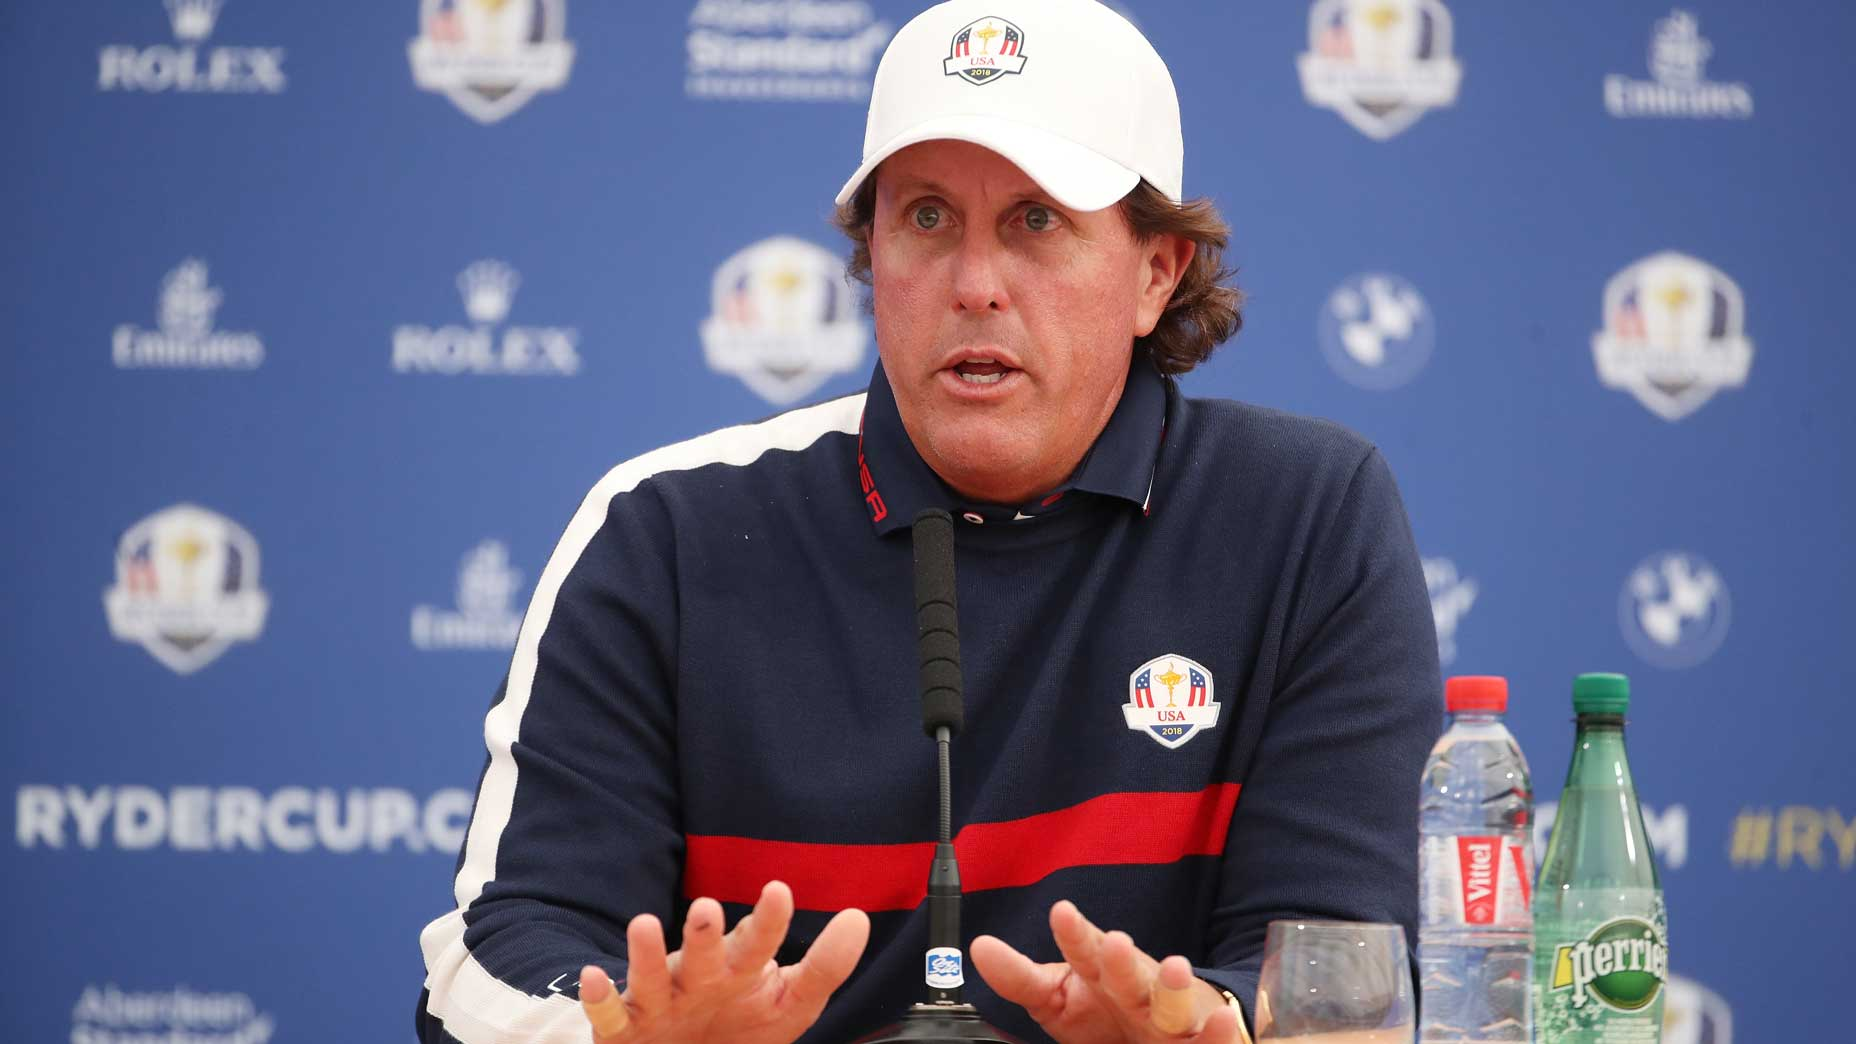 Phil Mickelson at Ryder Cup